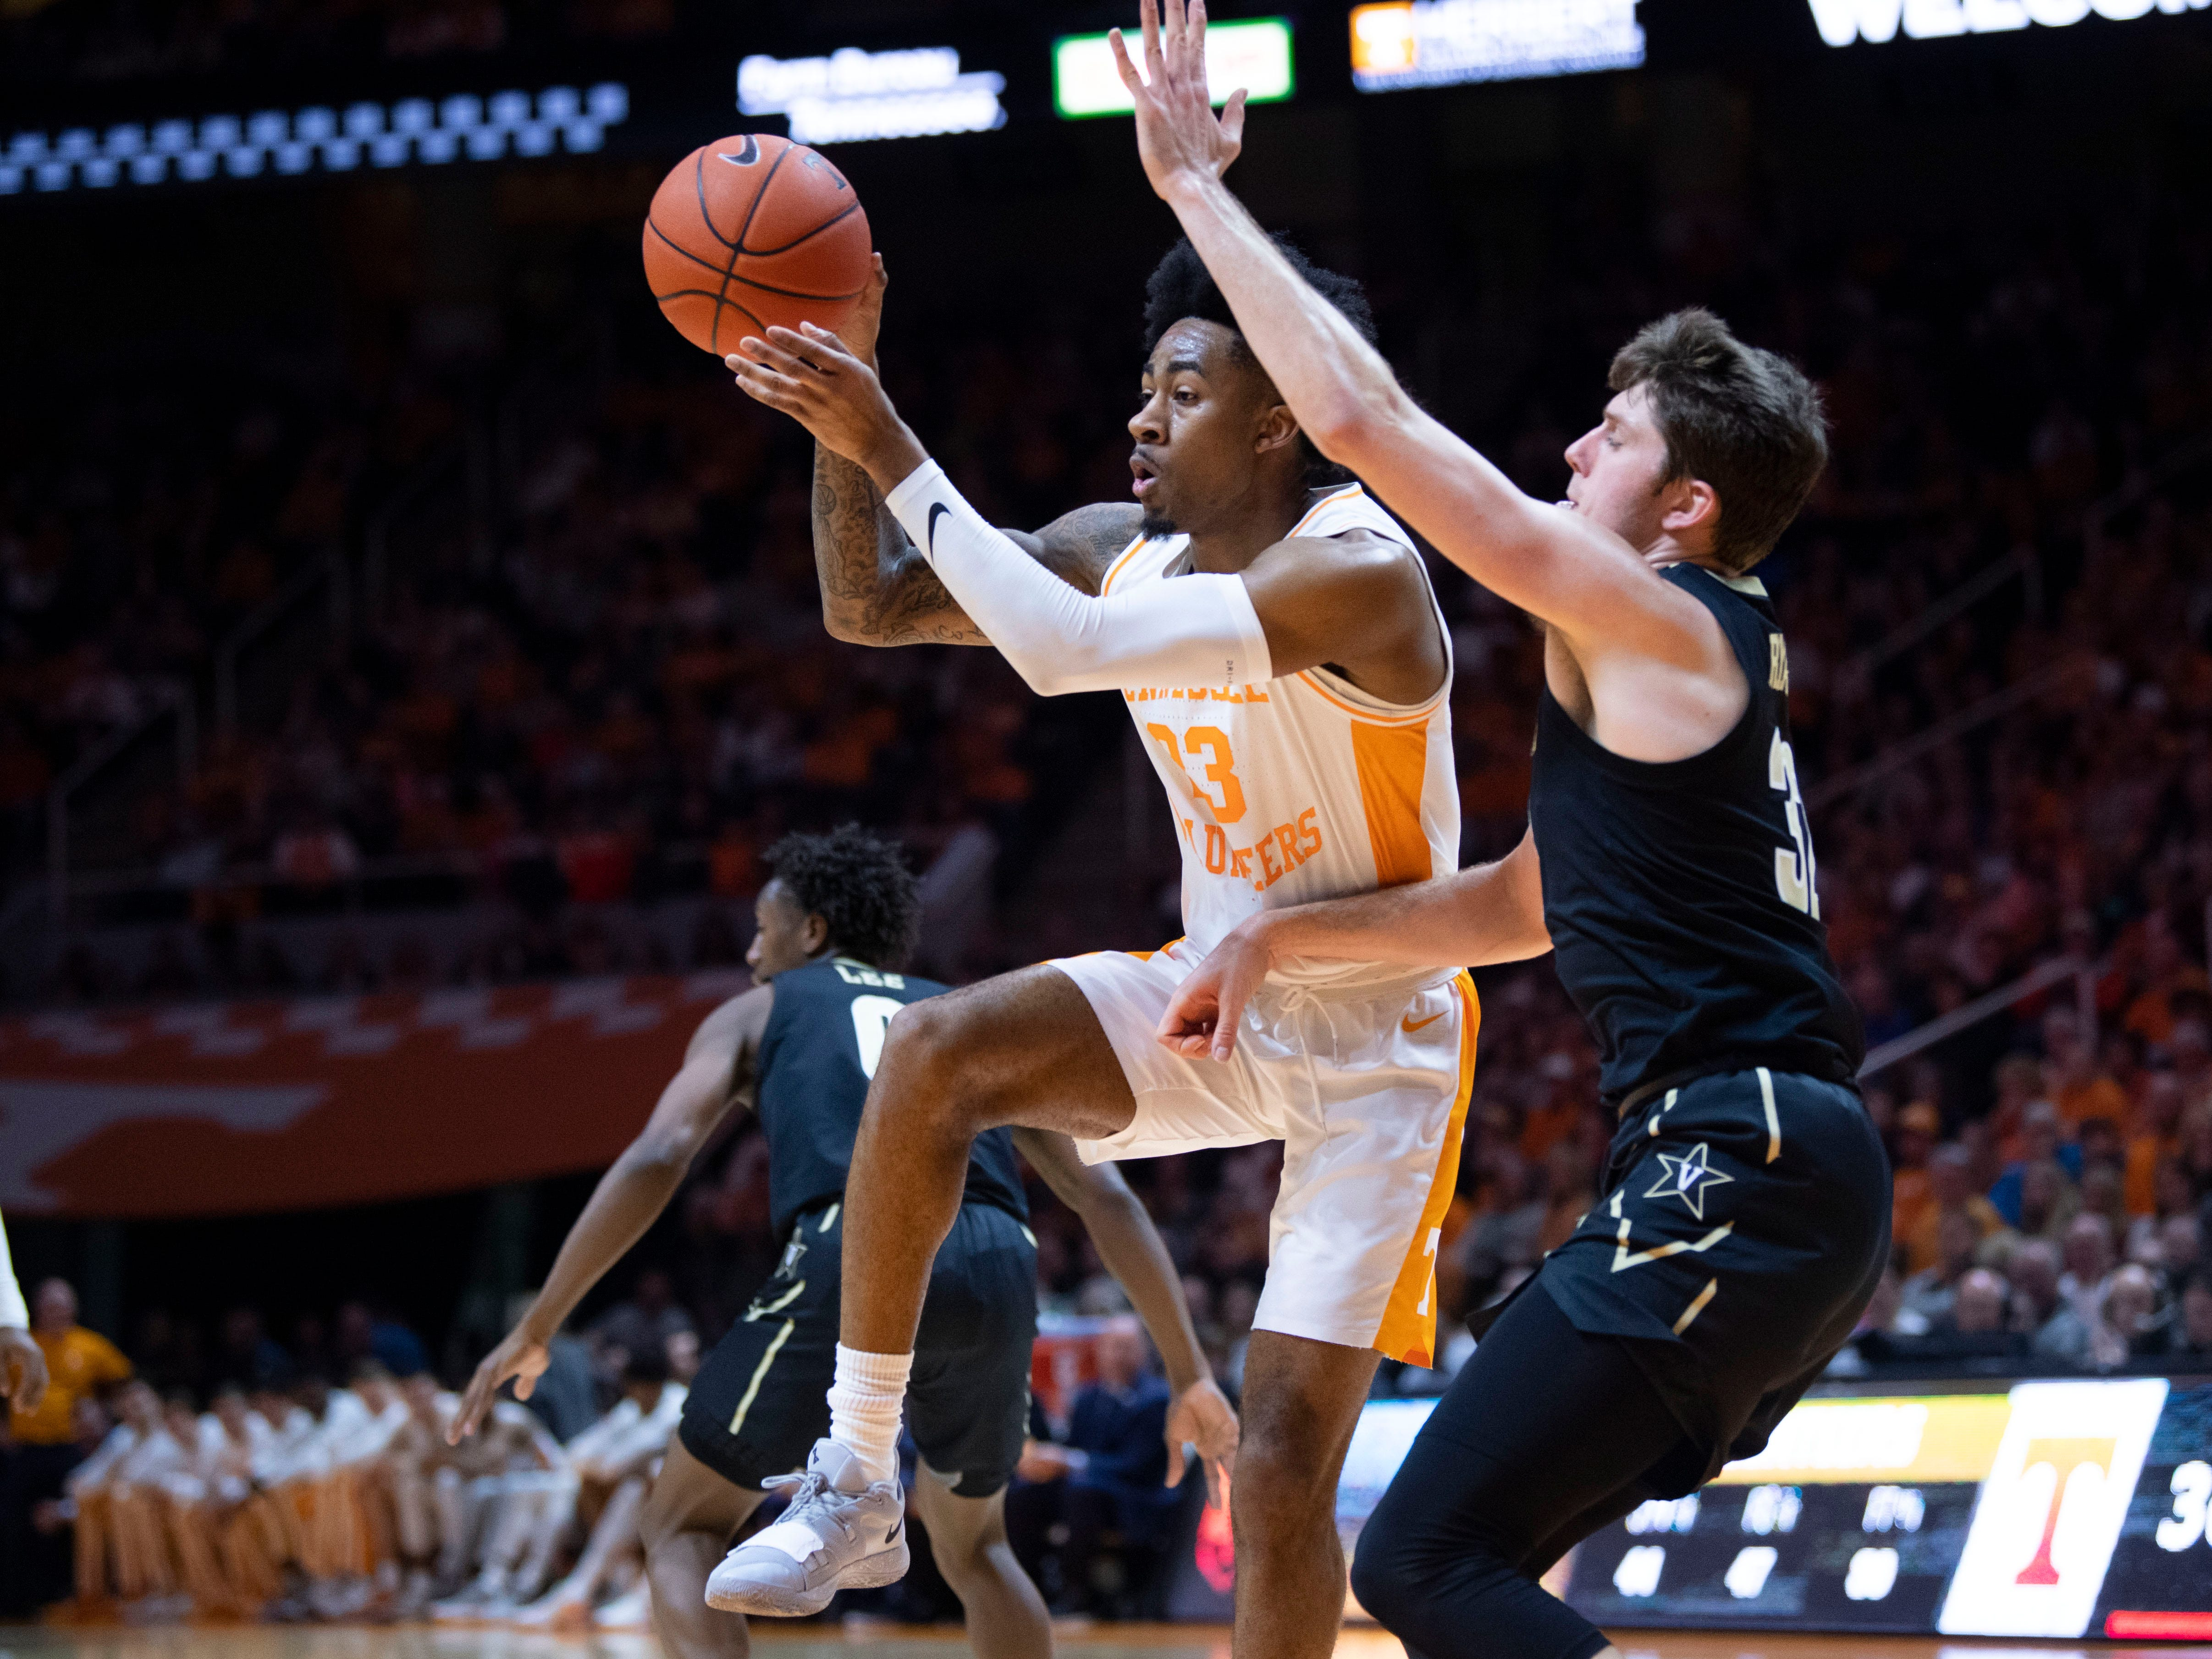 Tennessee's Jordan Bowden (23) passes the ball while guarded by Vanderbilt's Matt Ryan (32) on Tuesday, February 19, 2019.